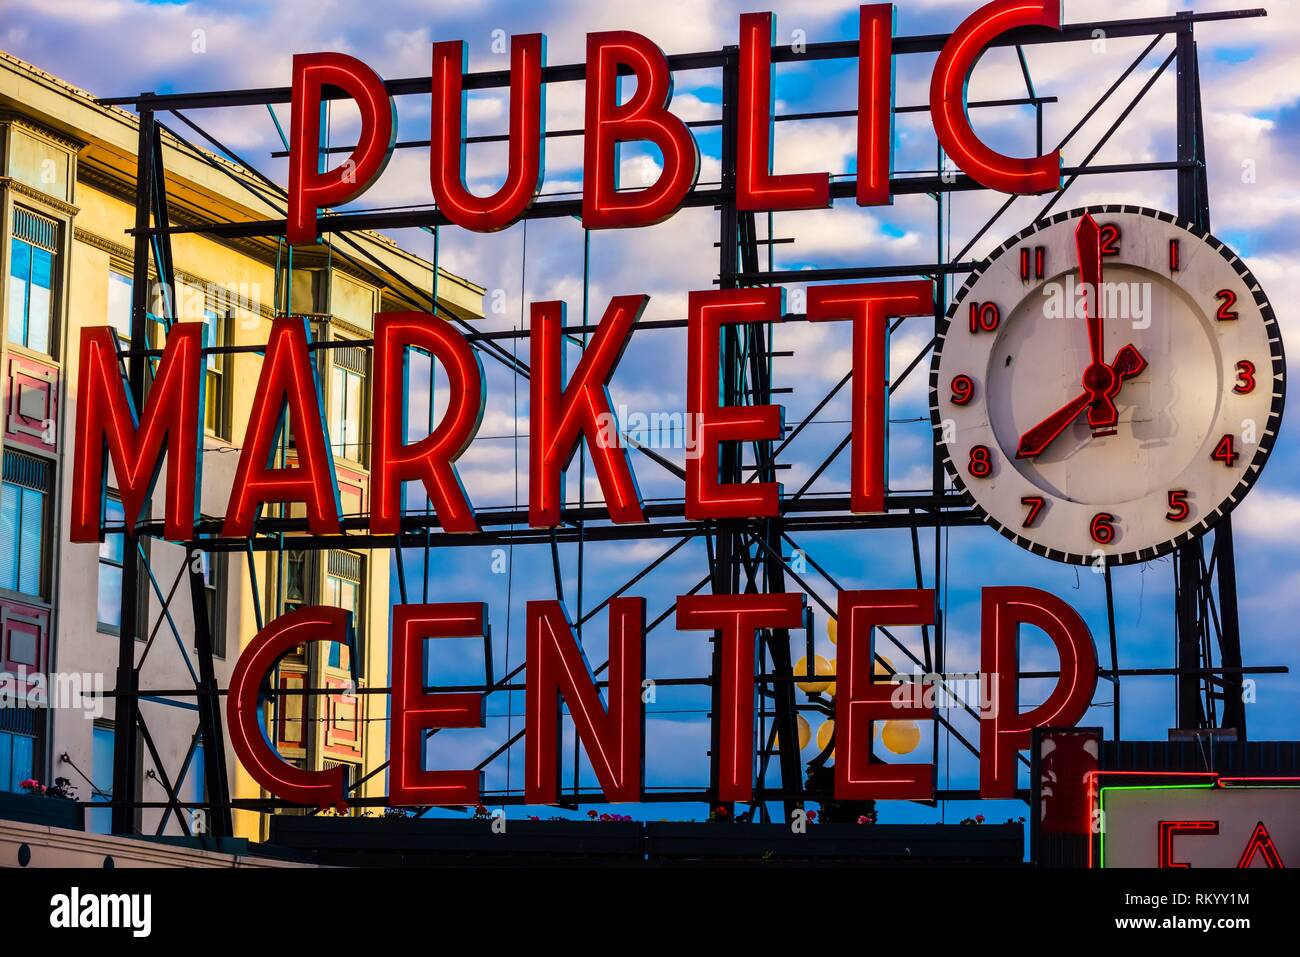 Public Market Center neon sign at the Pike Place Market, Seattle, Washington USA. - Stock Image